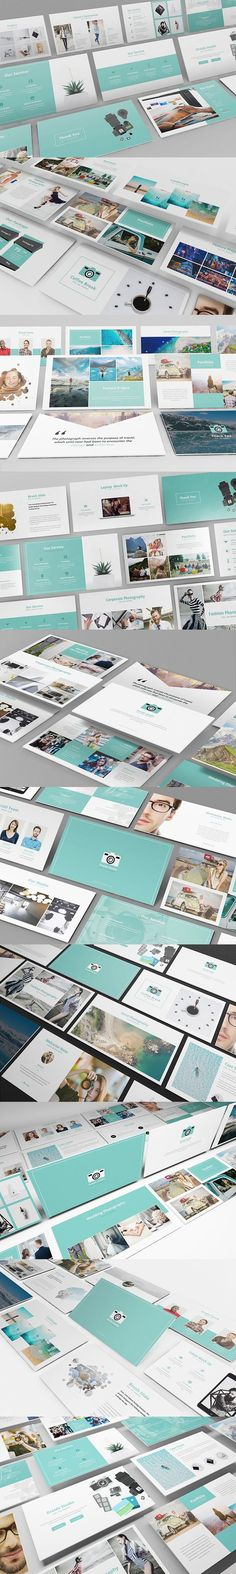 Photography Powerpoint Template #photography #powerpoint